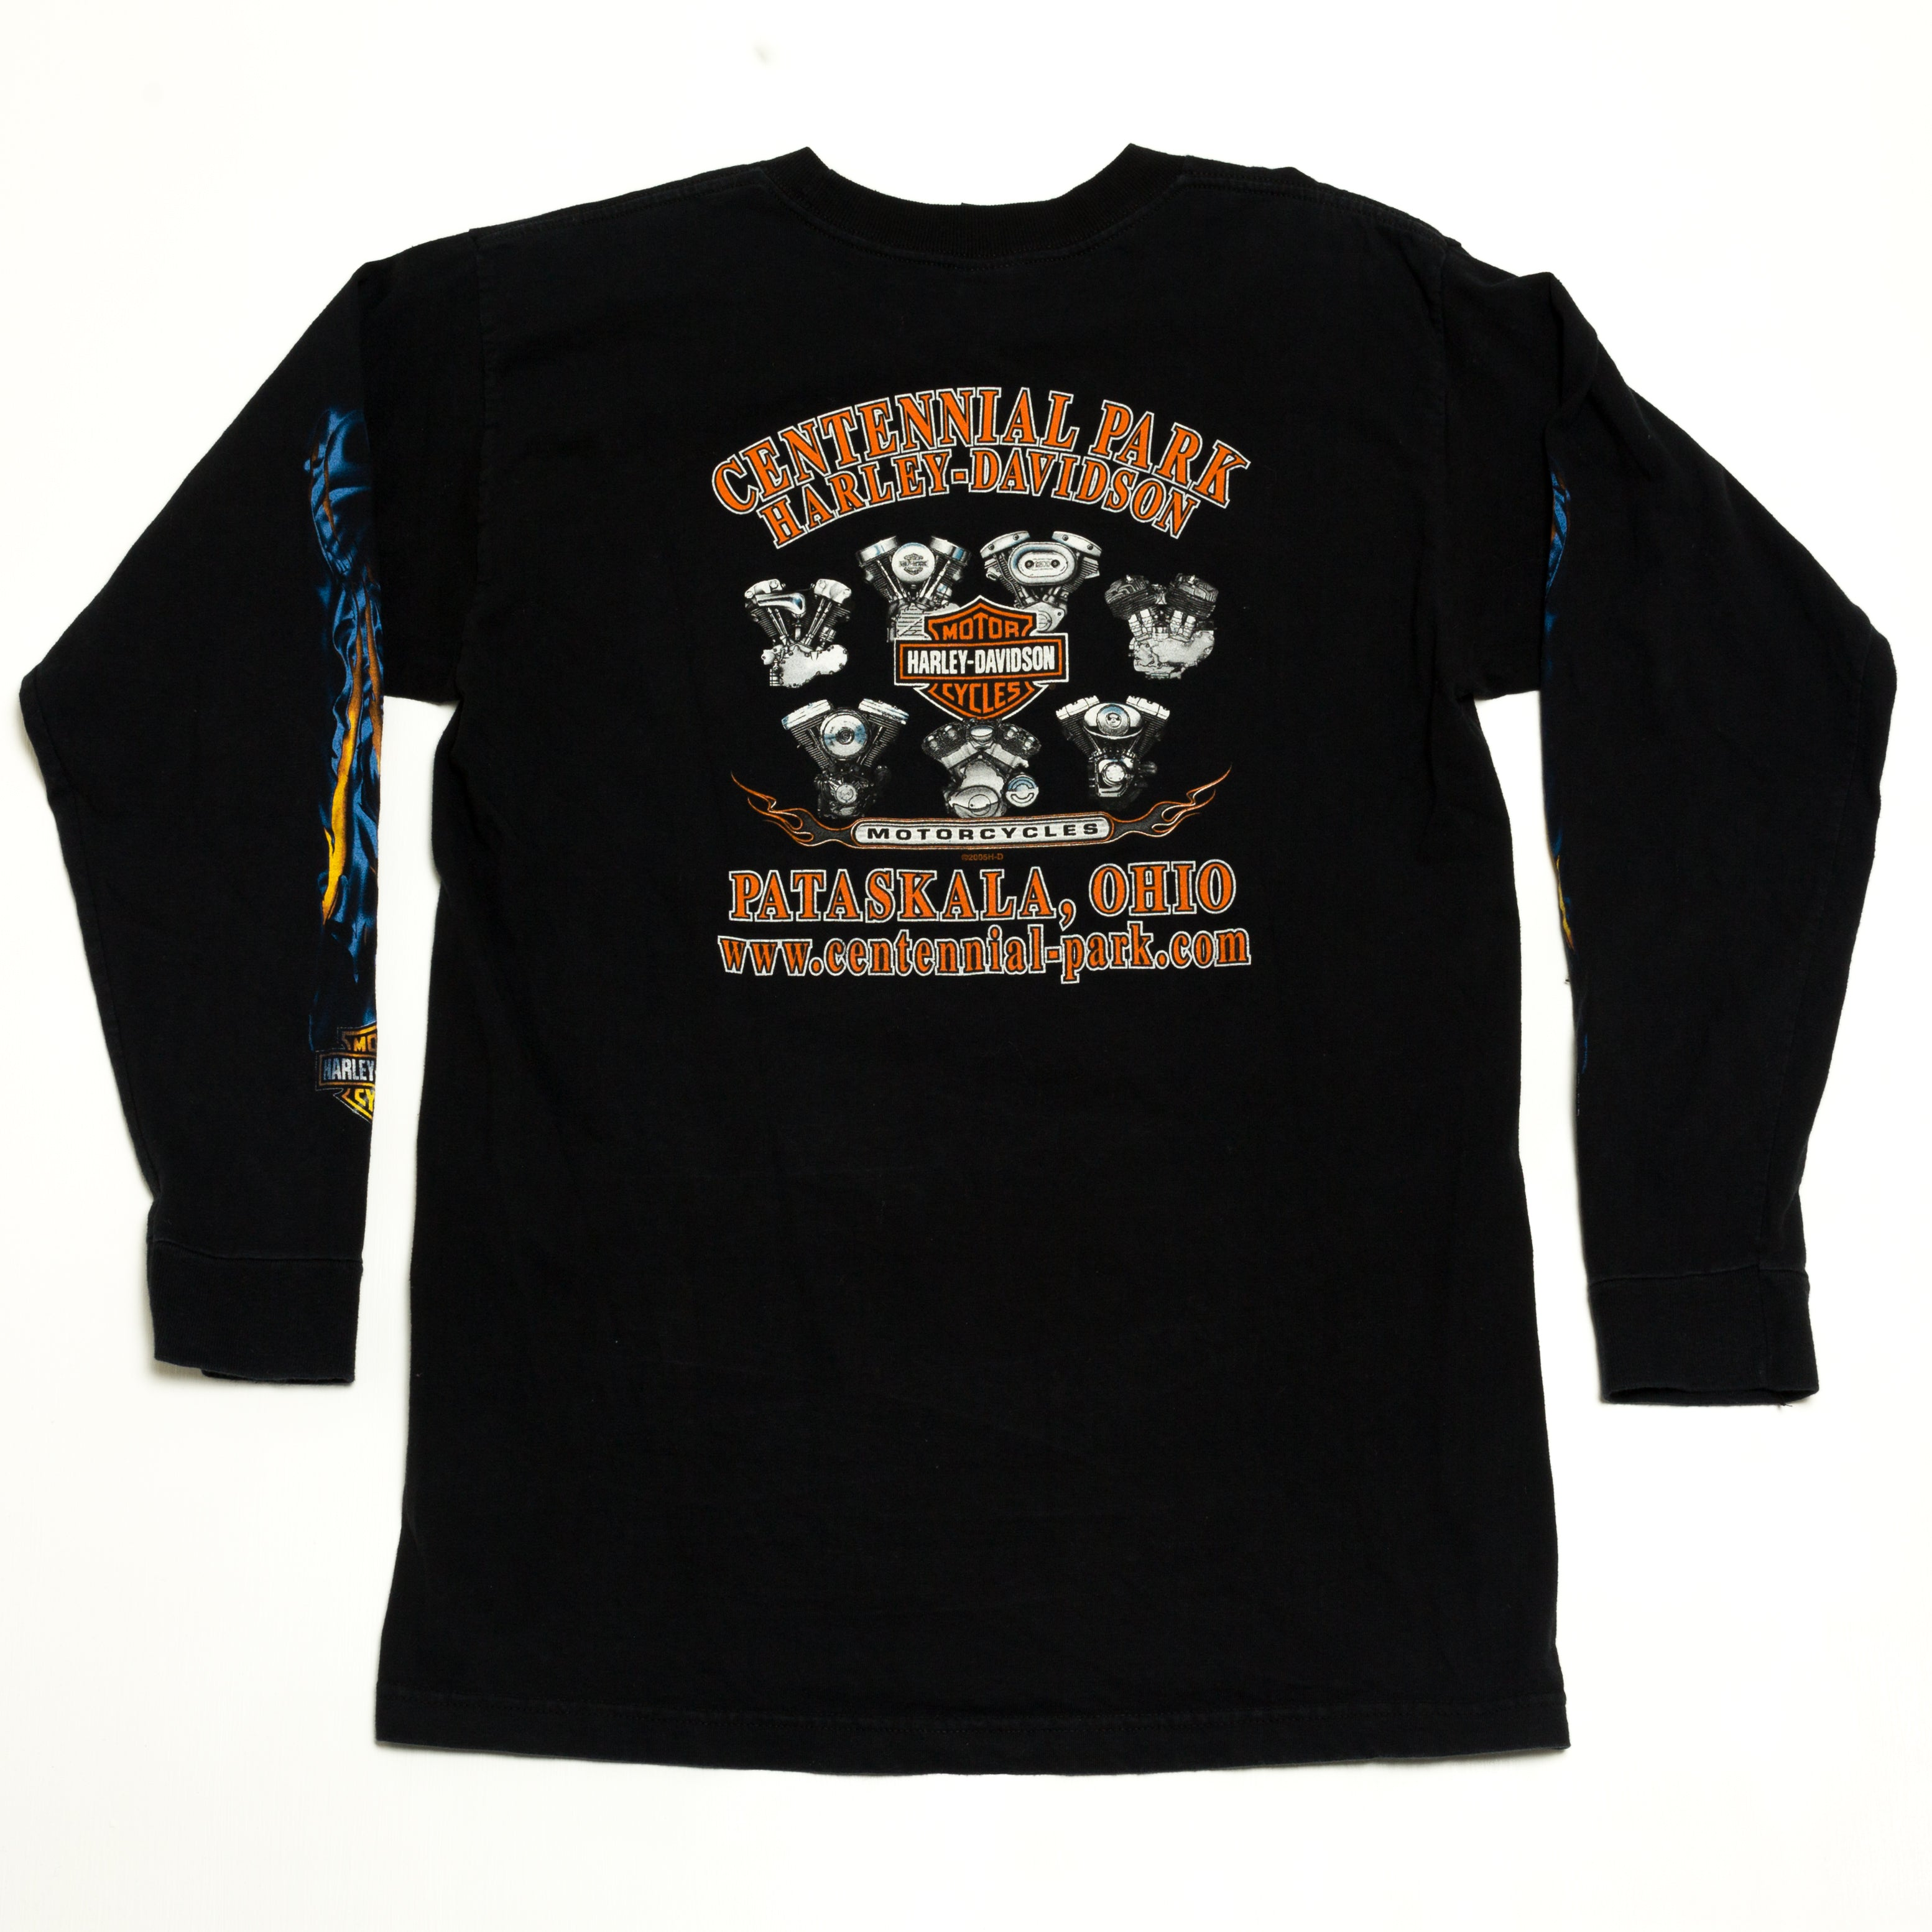 2005 Harley Davidson Long Sleeve T-Shirt